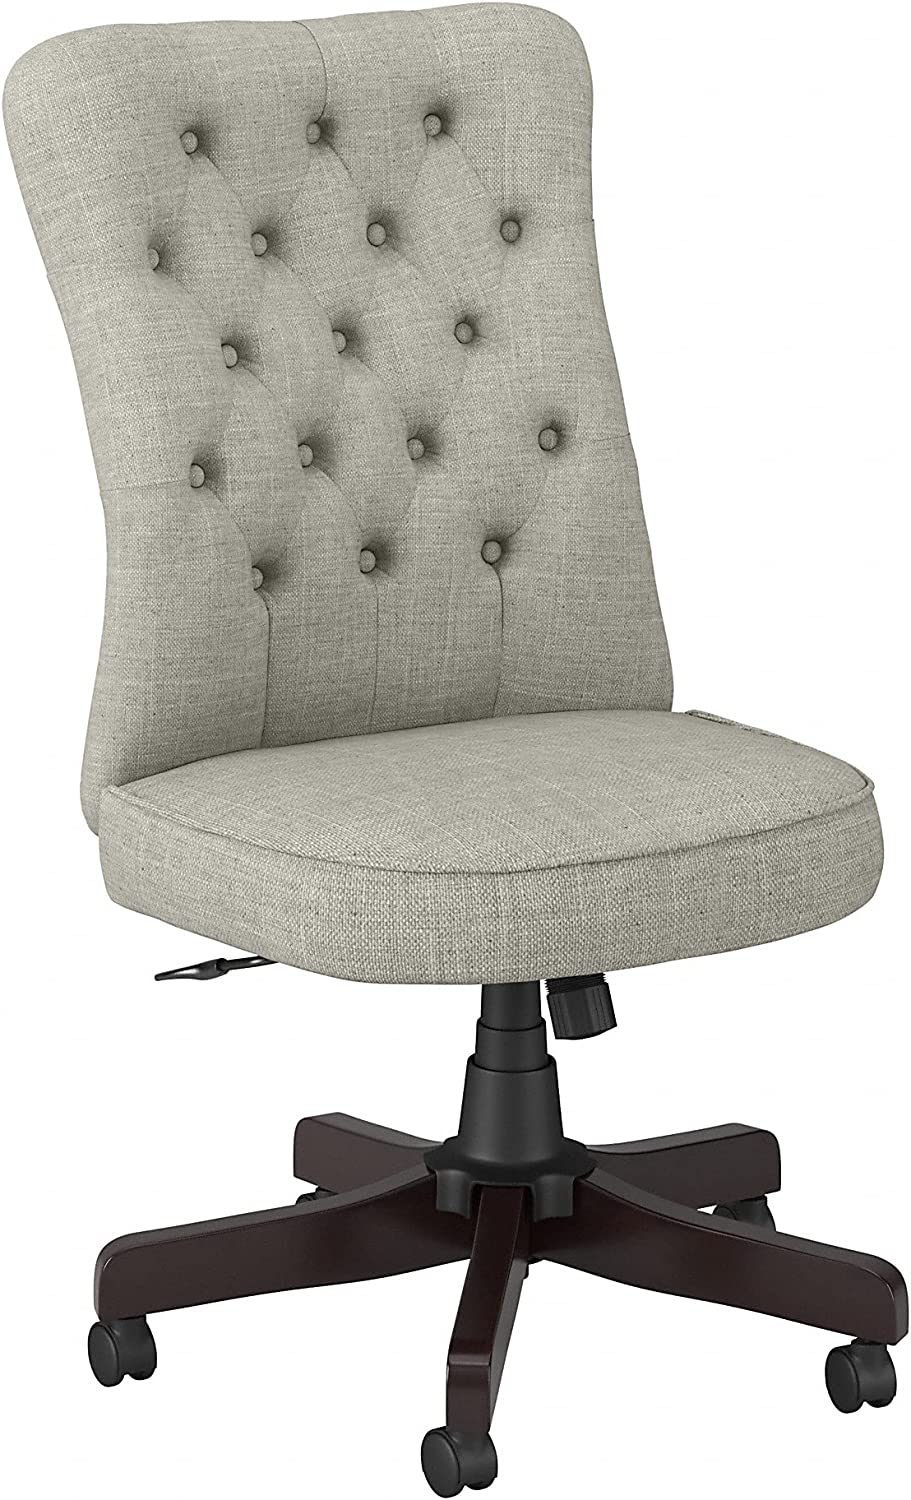 Bush Business Furniture Arden Lane High Back Tufted Office Chair, Light Gray Fabric